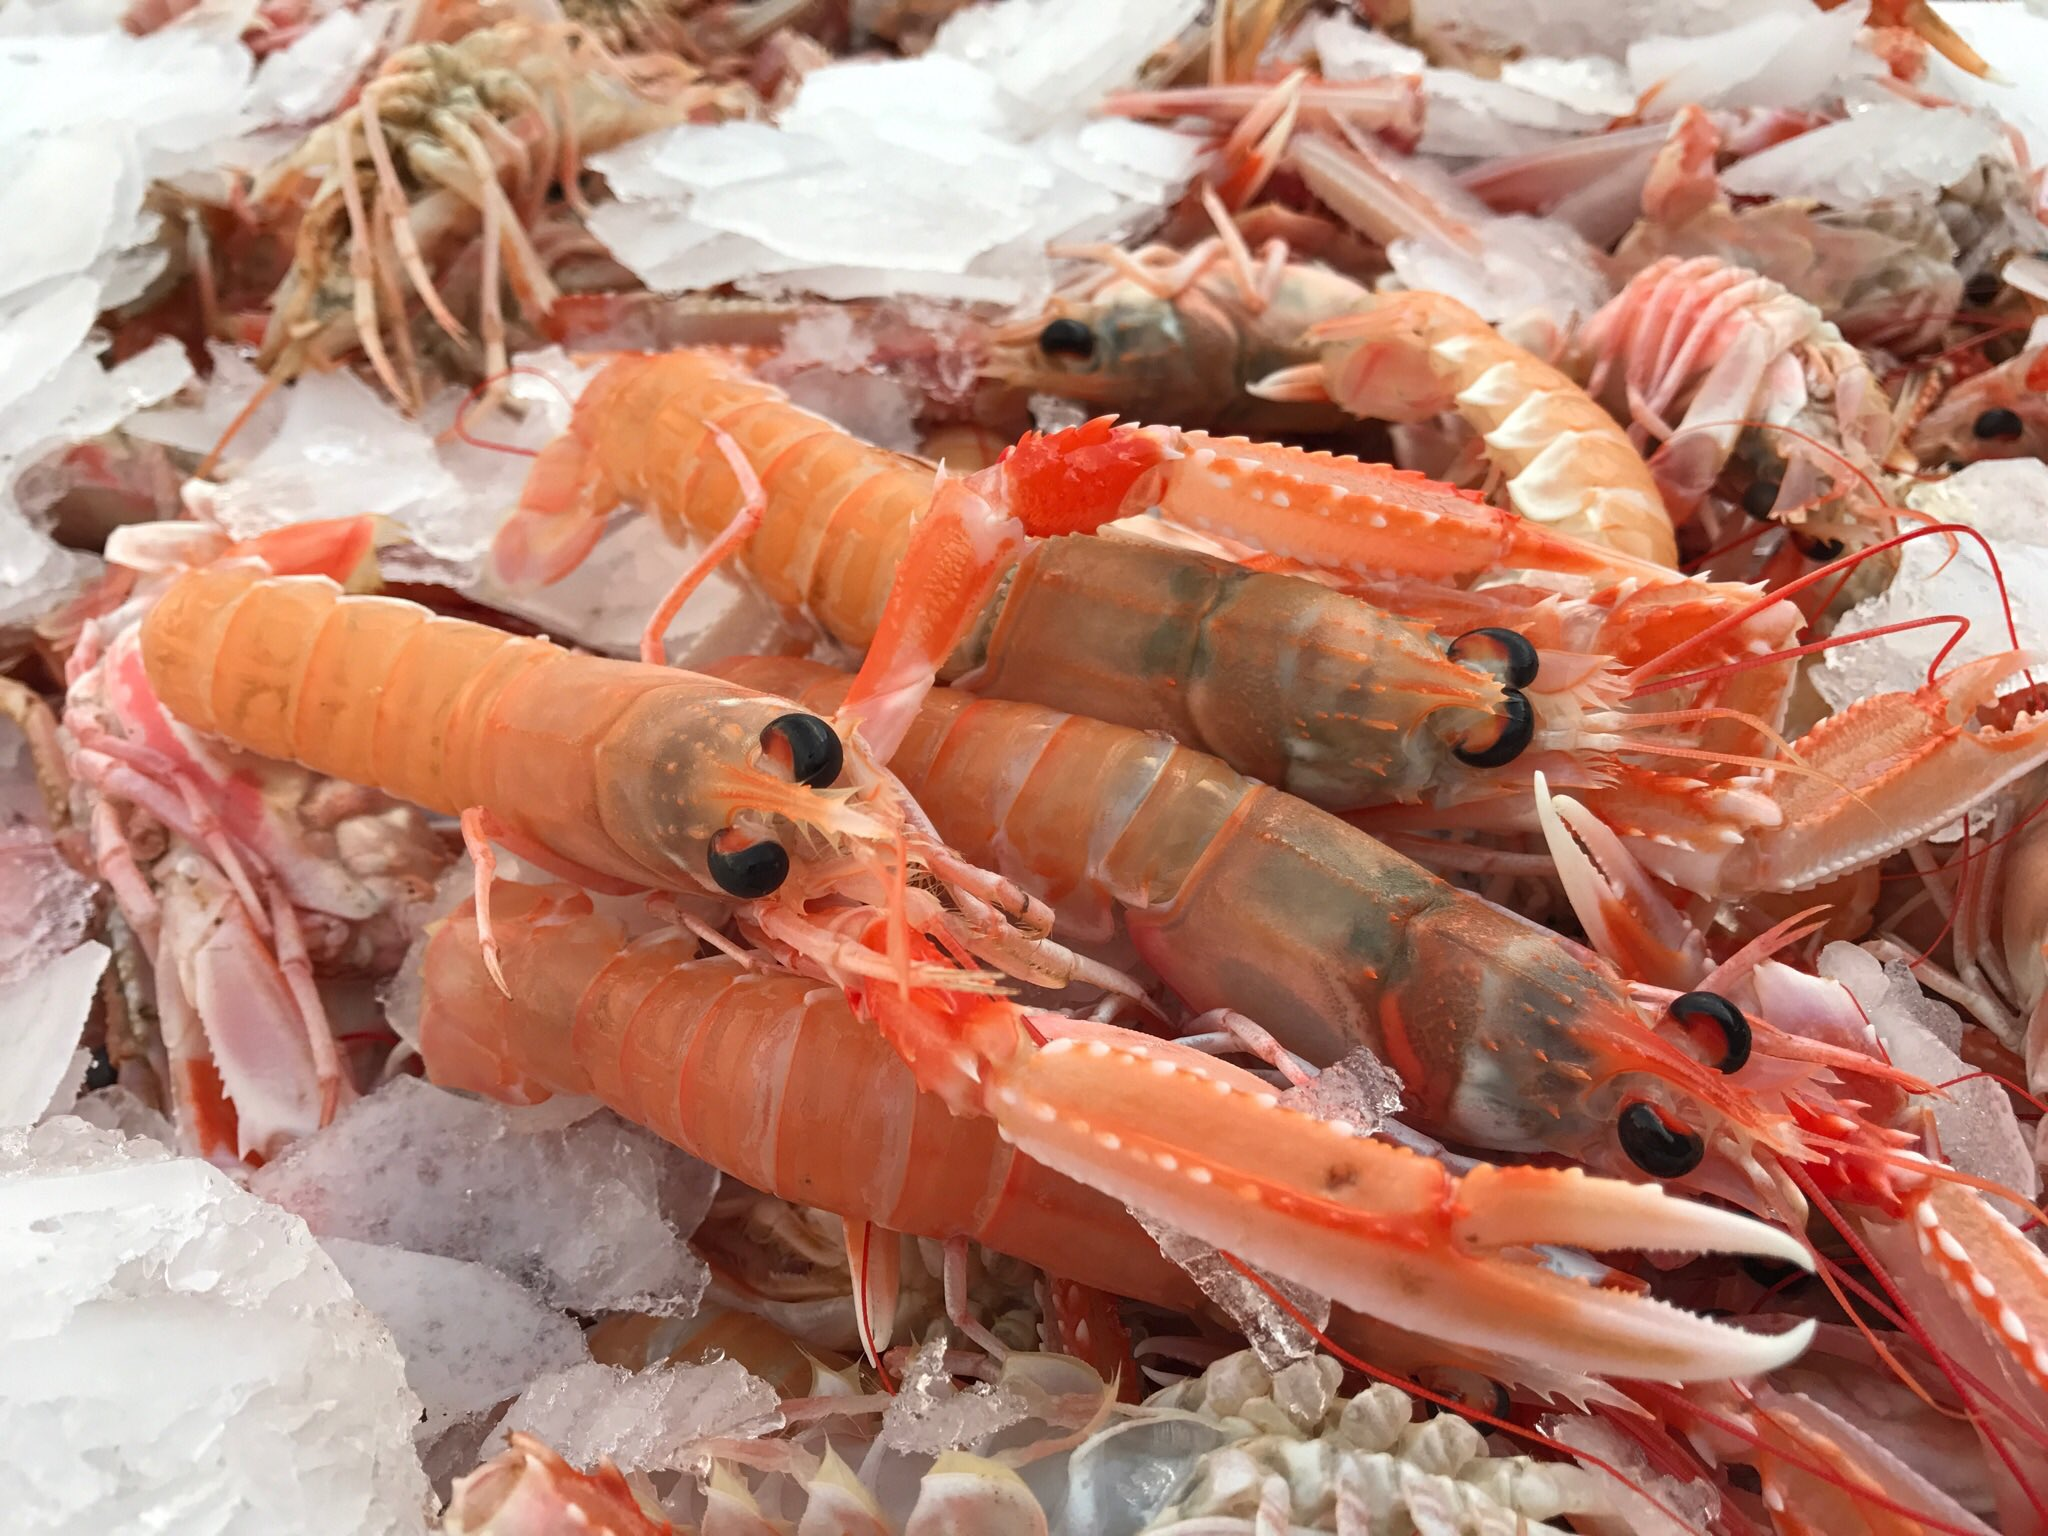 The Scottish Seafood Association has heavily criticised the UK and Scottish Governments over funding failures to the industry